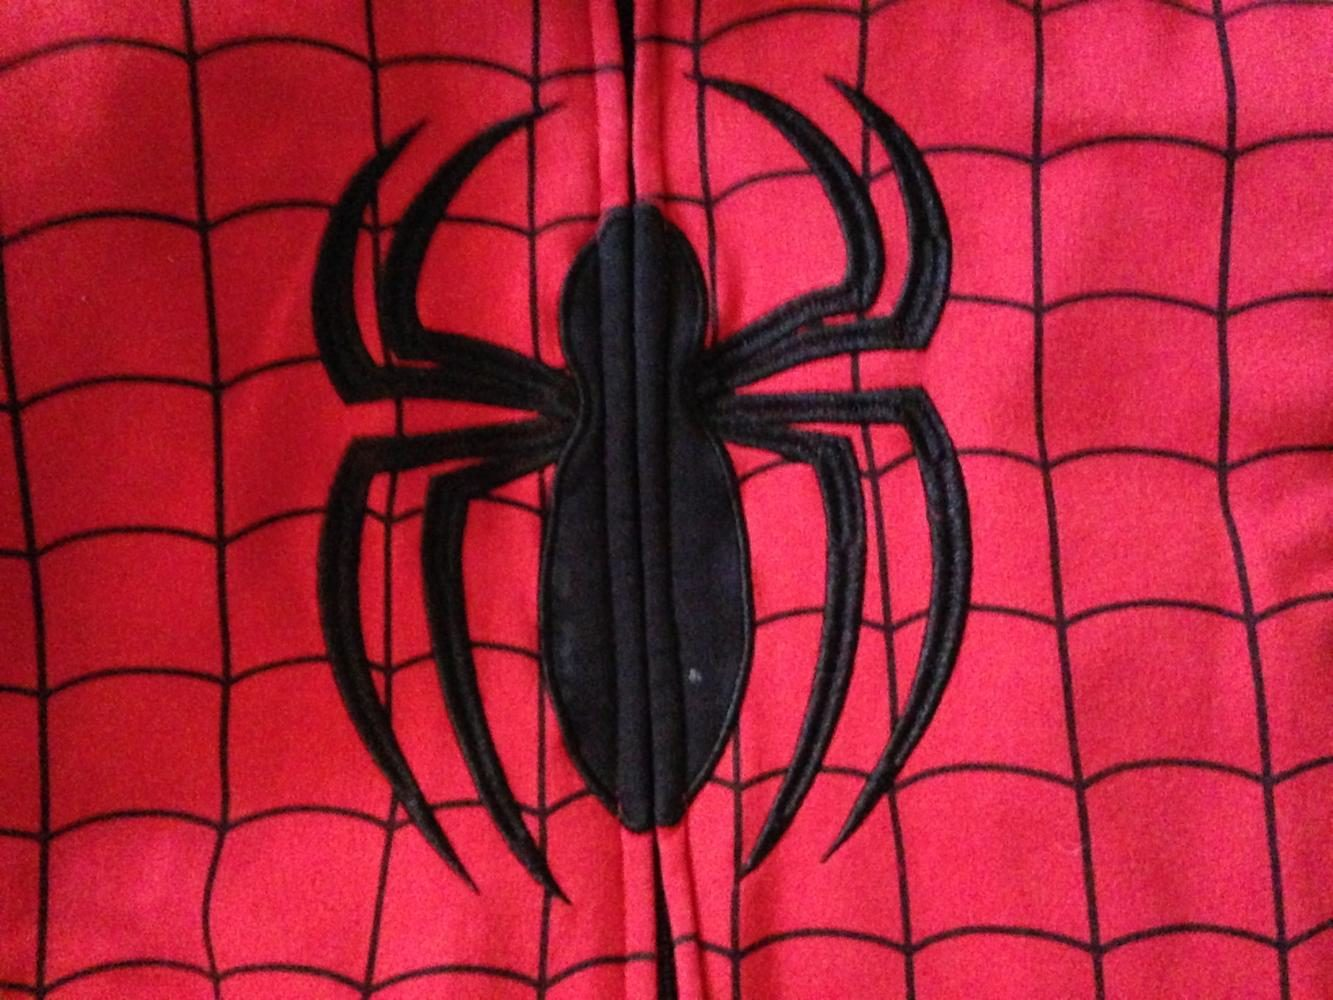 %22Spider-Man%3A+Homecoming%22+features+a+new%2C+high-tech+Spider-Man+costume+for+a+new%2C+high-tech+Spider-Man+audience.